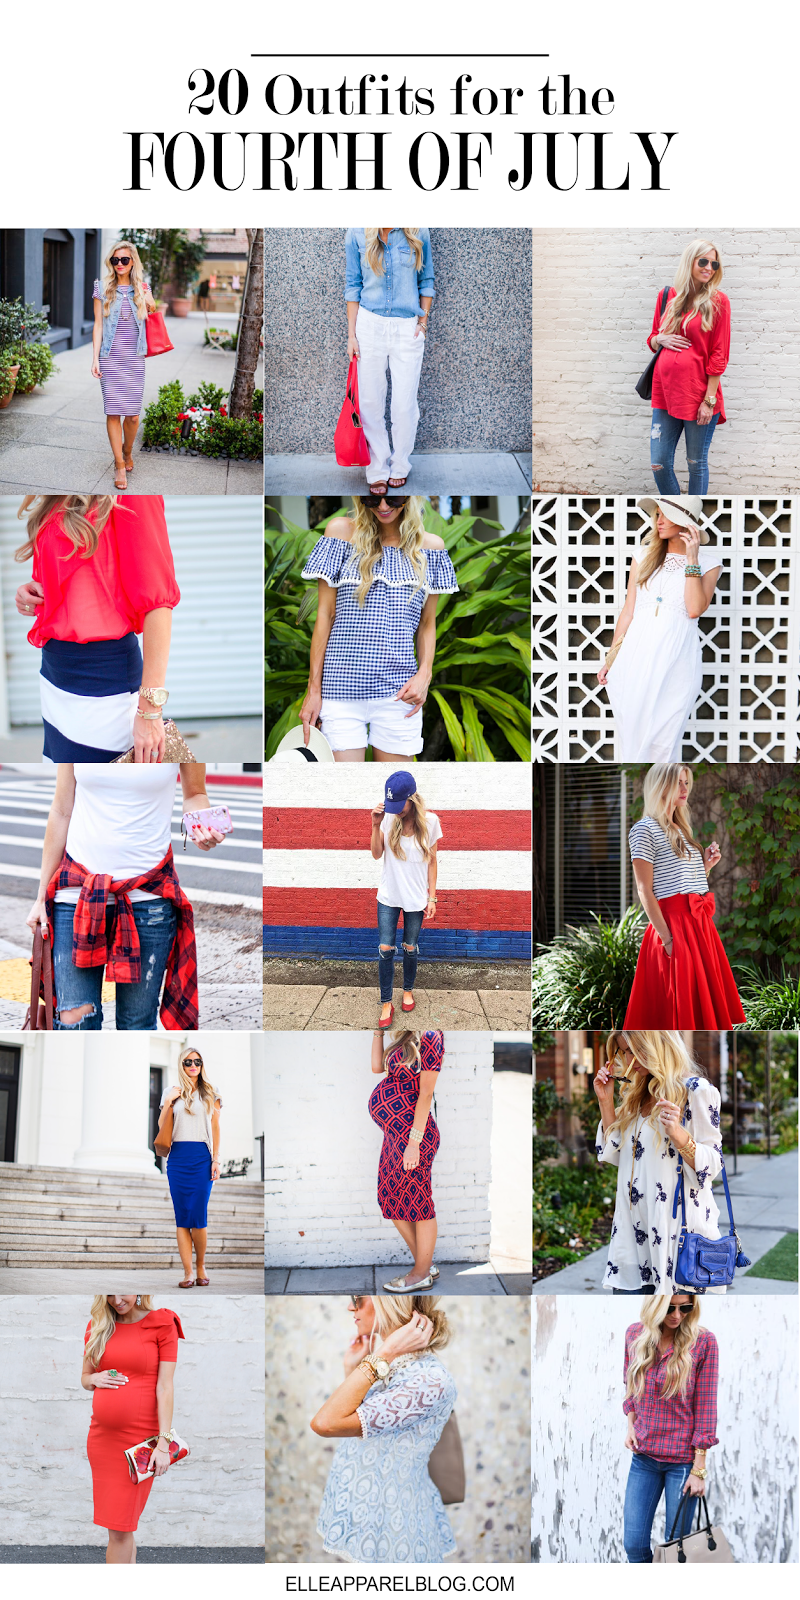 20 OUTFIT IDEAS TO HELP YOU DECIDE WHAT TO WEAR ON THE 4TH OF JULY